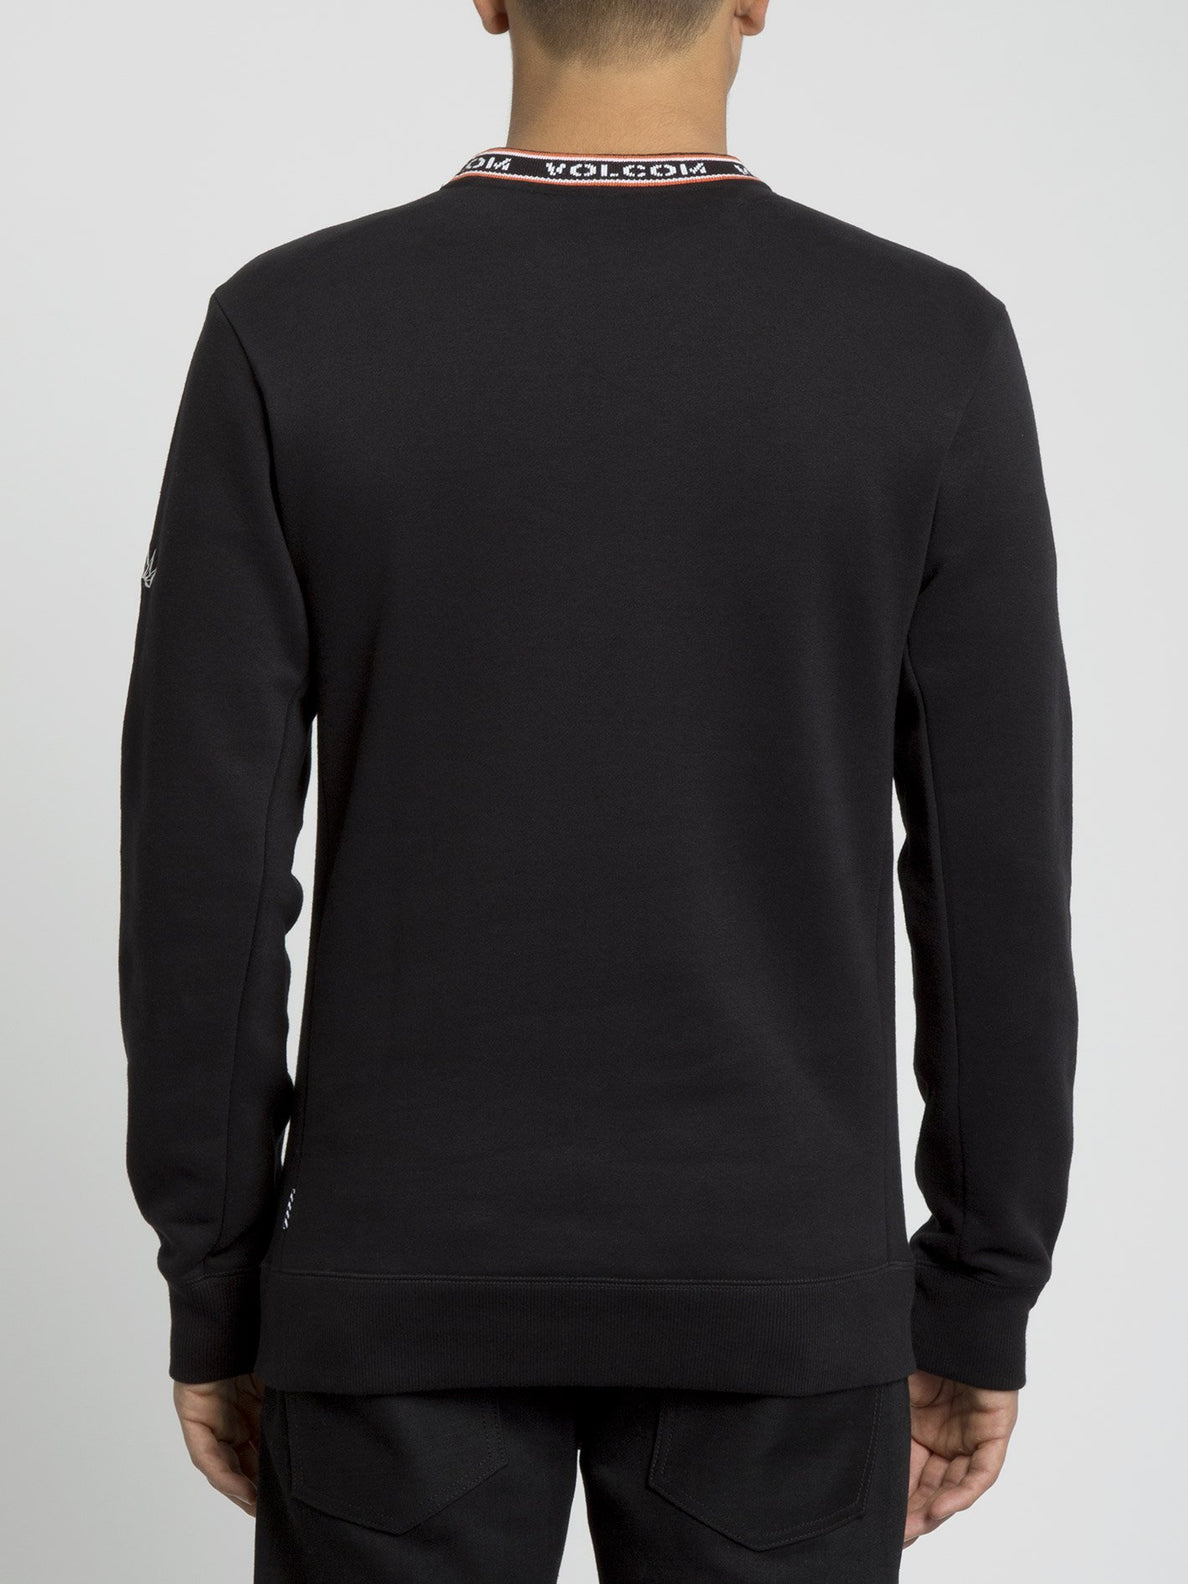 Forward To Past Sweater - Black (A4631900_BLK) [B]